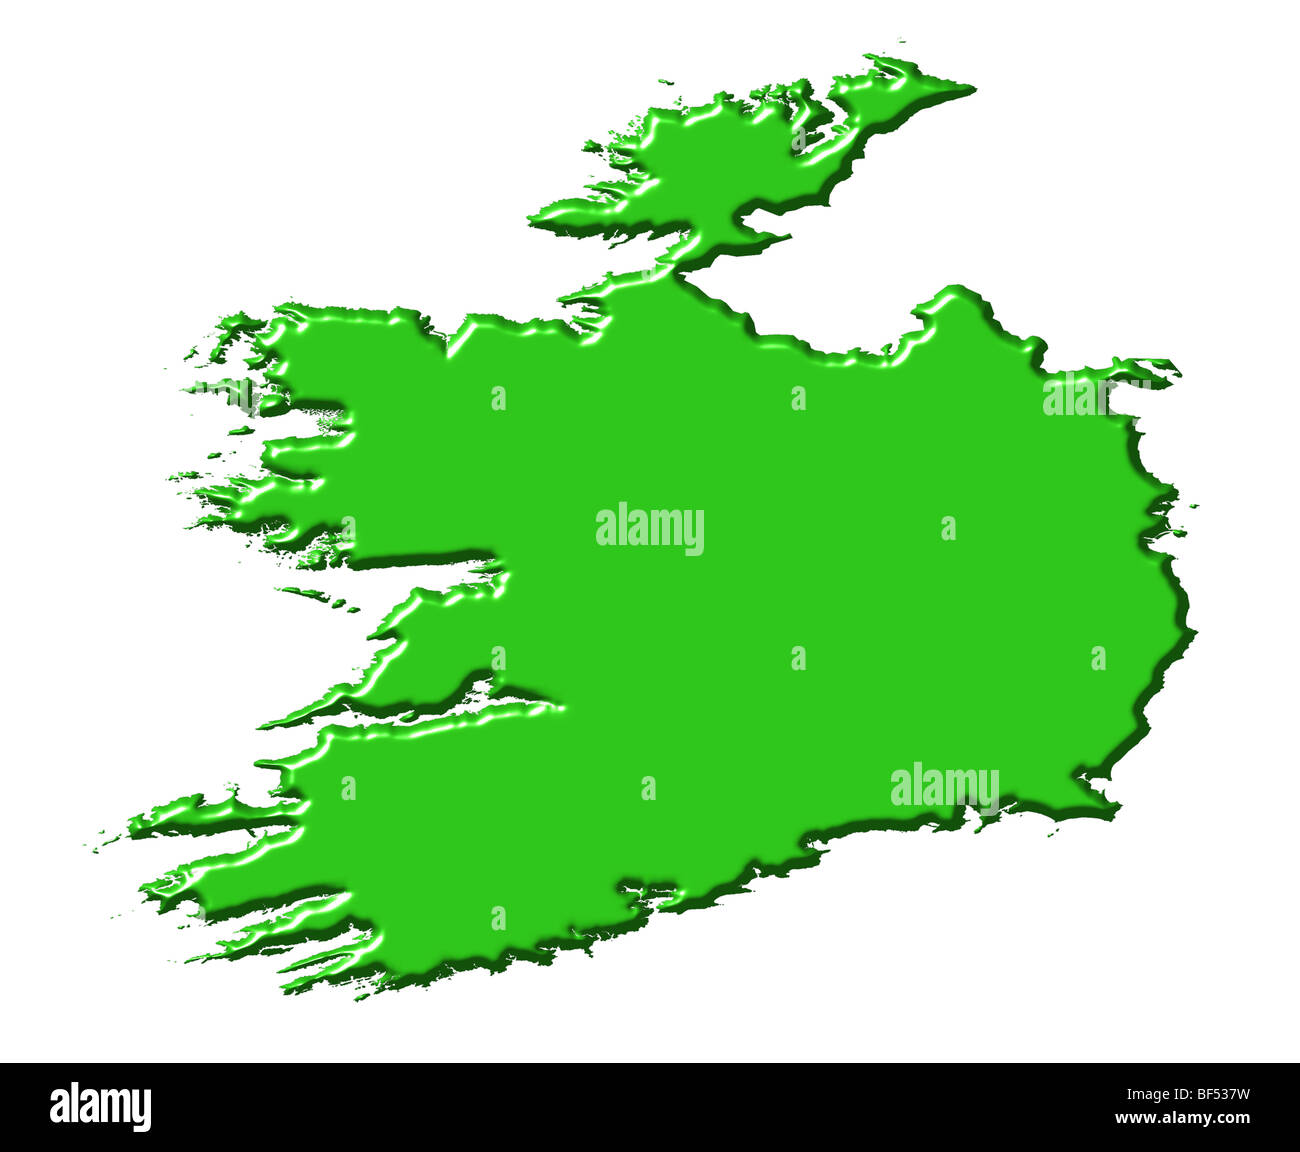 Map Of Ireland 3d.Ireland 3d Map With National Color Stock Photo 26542541 Alamy